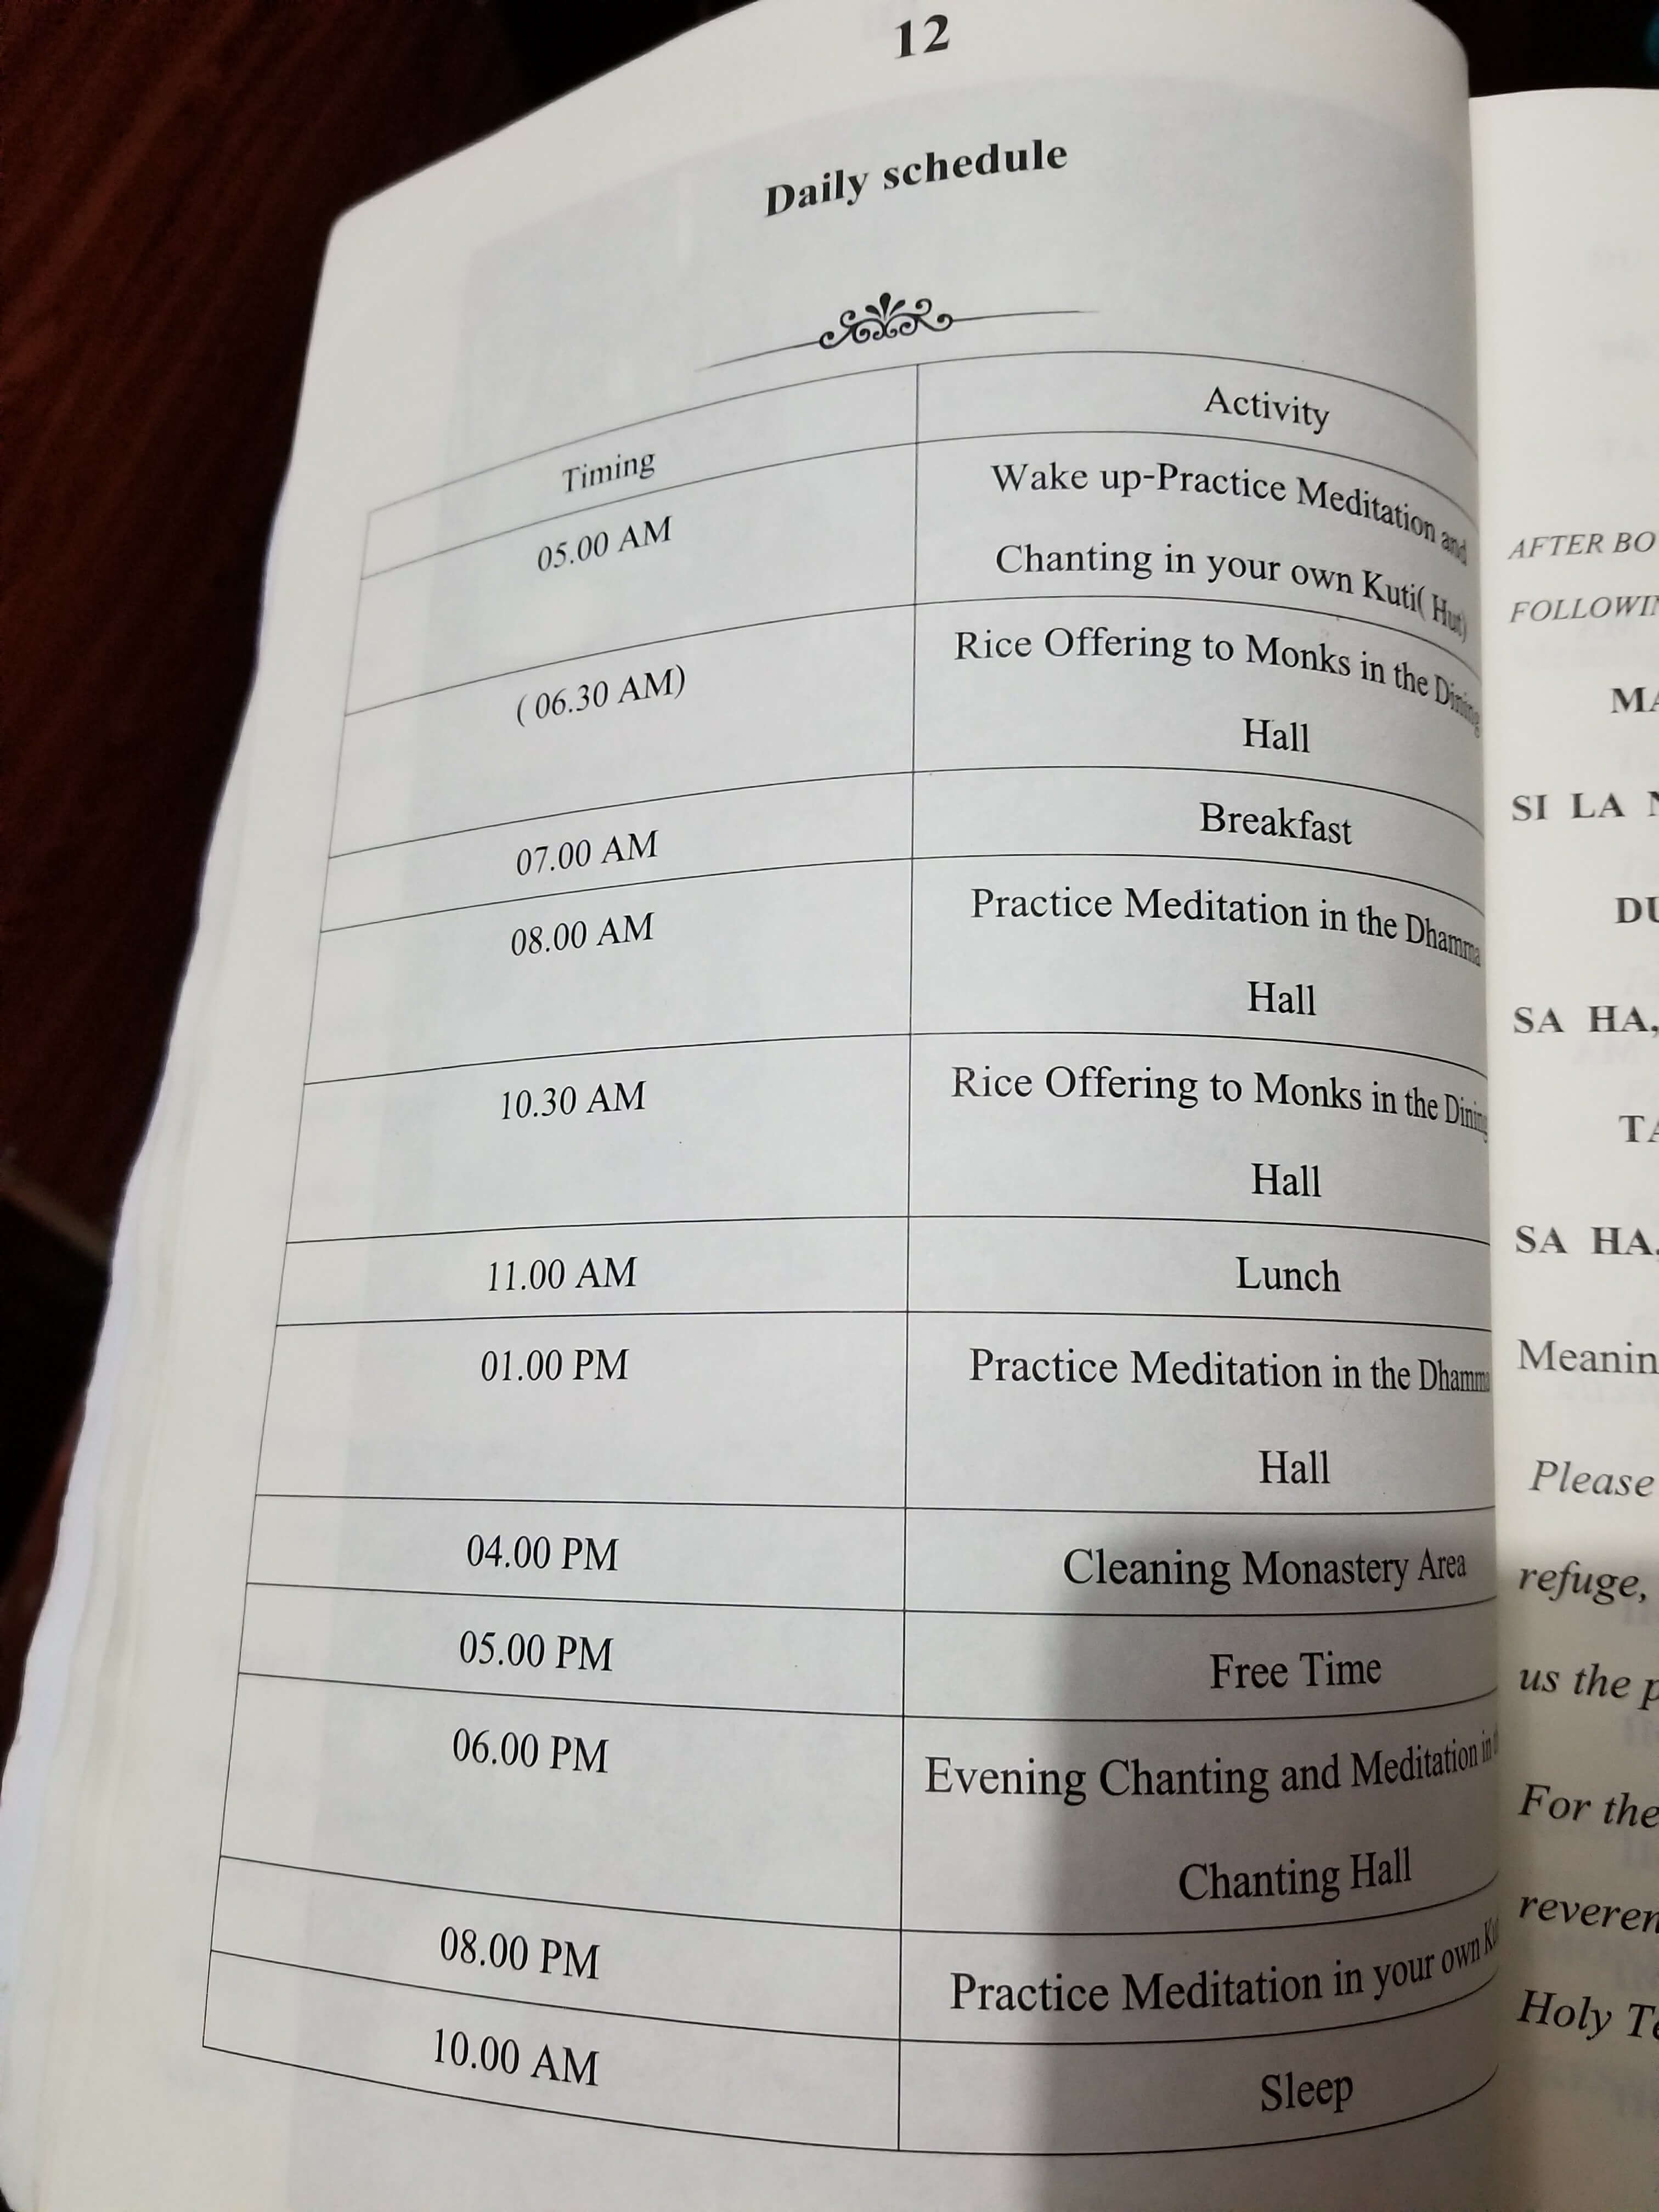 Tam Wua Forest Monastery schedule